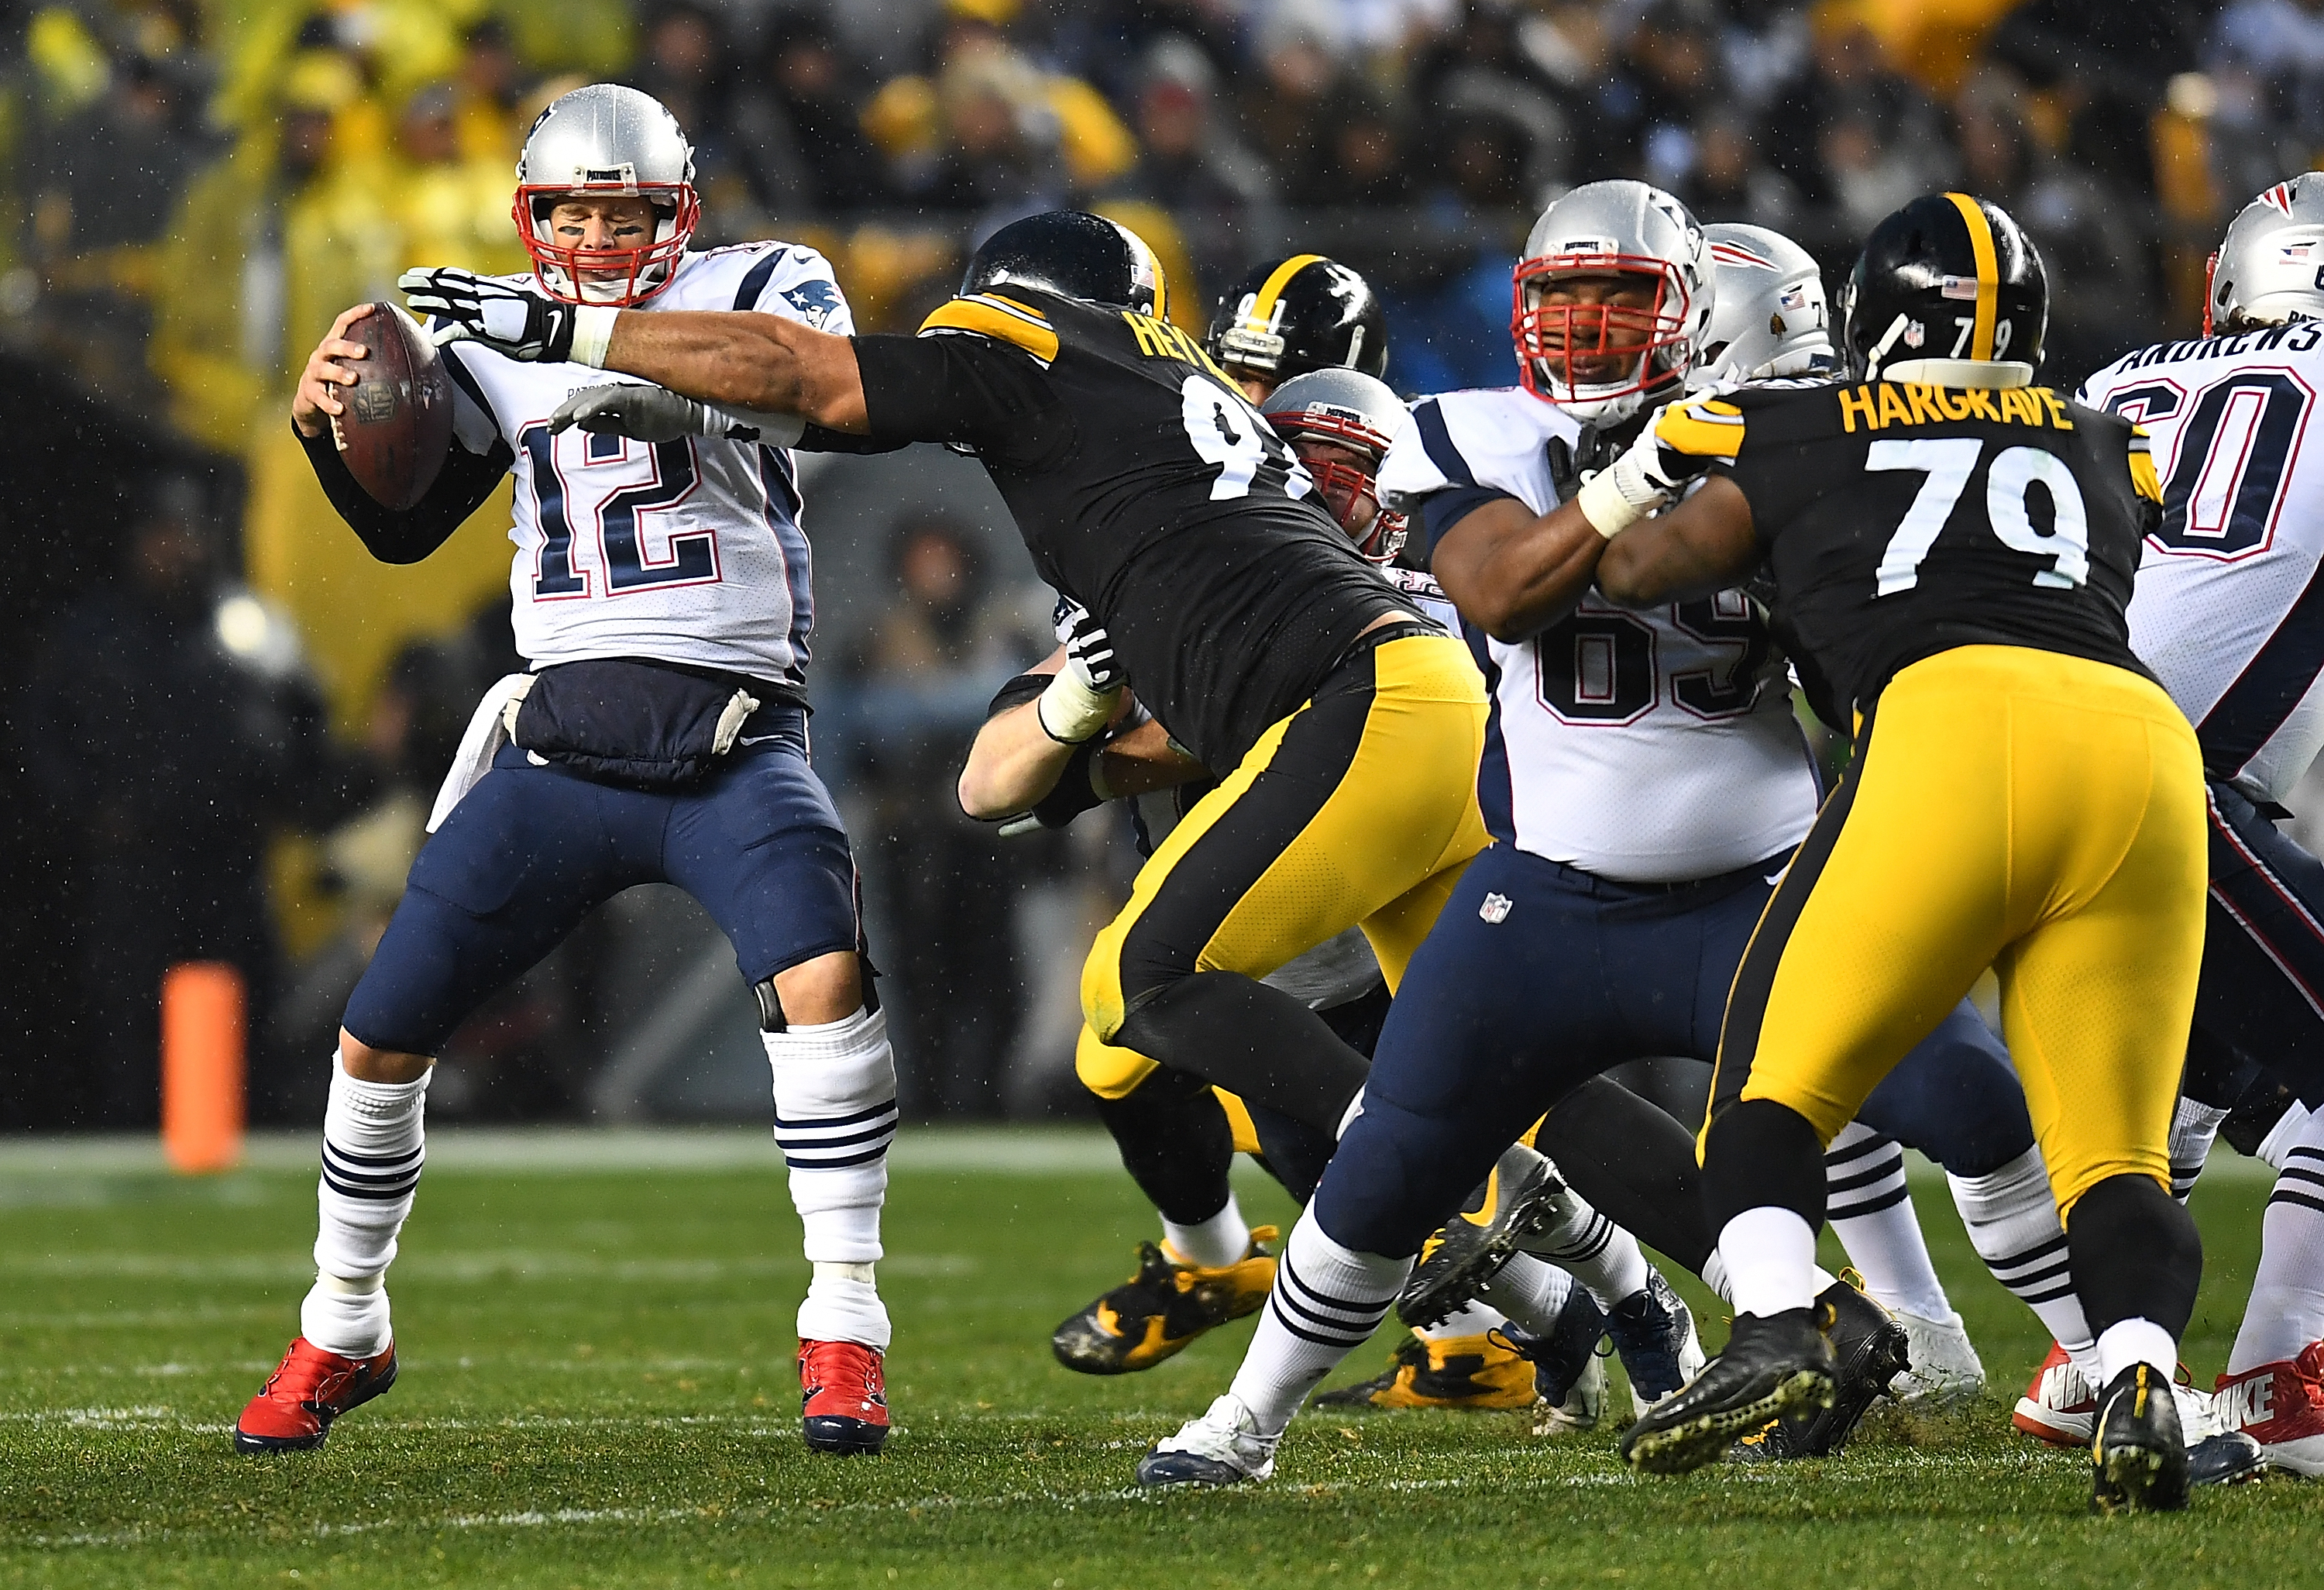 Tom Brady Steelers Pats Steeler Brady vs Acereros